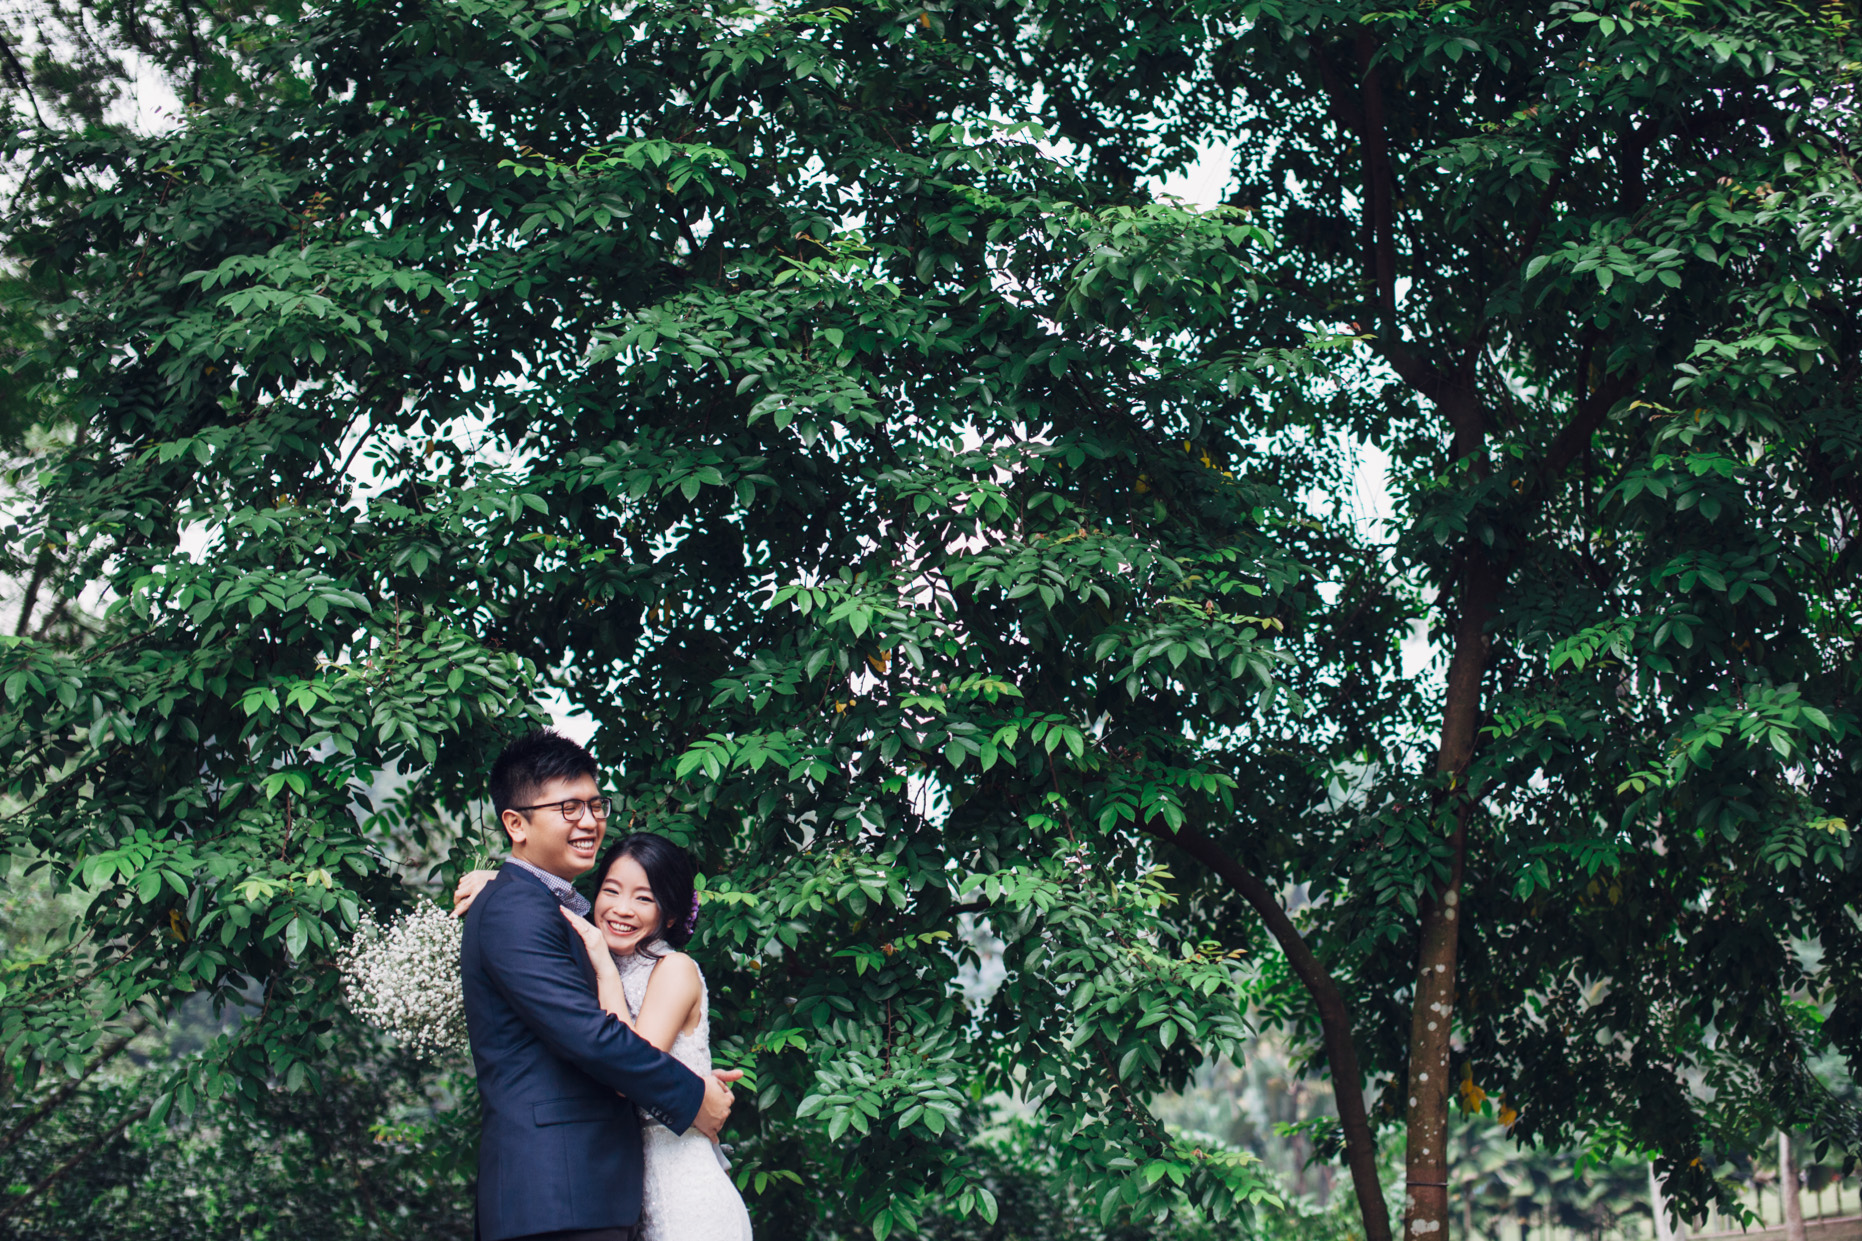 6-hellojanelee-malaysia-wedding-photographer-lake-garden-tinajackson-prewedding